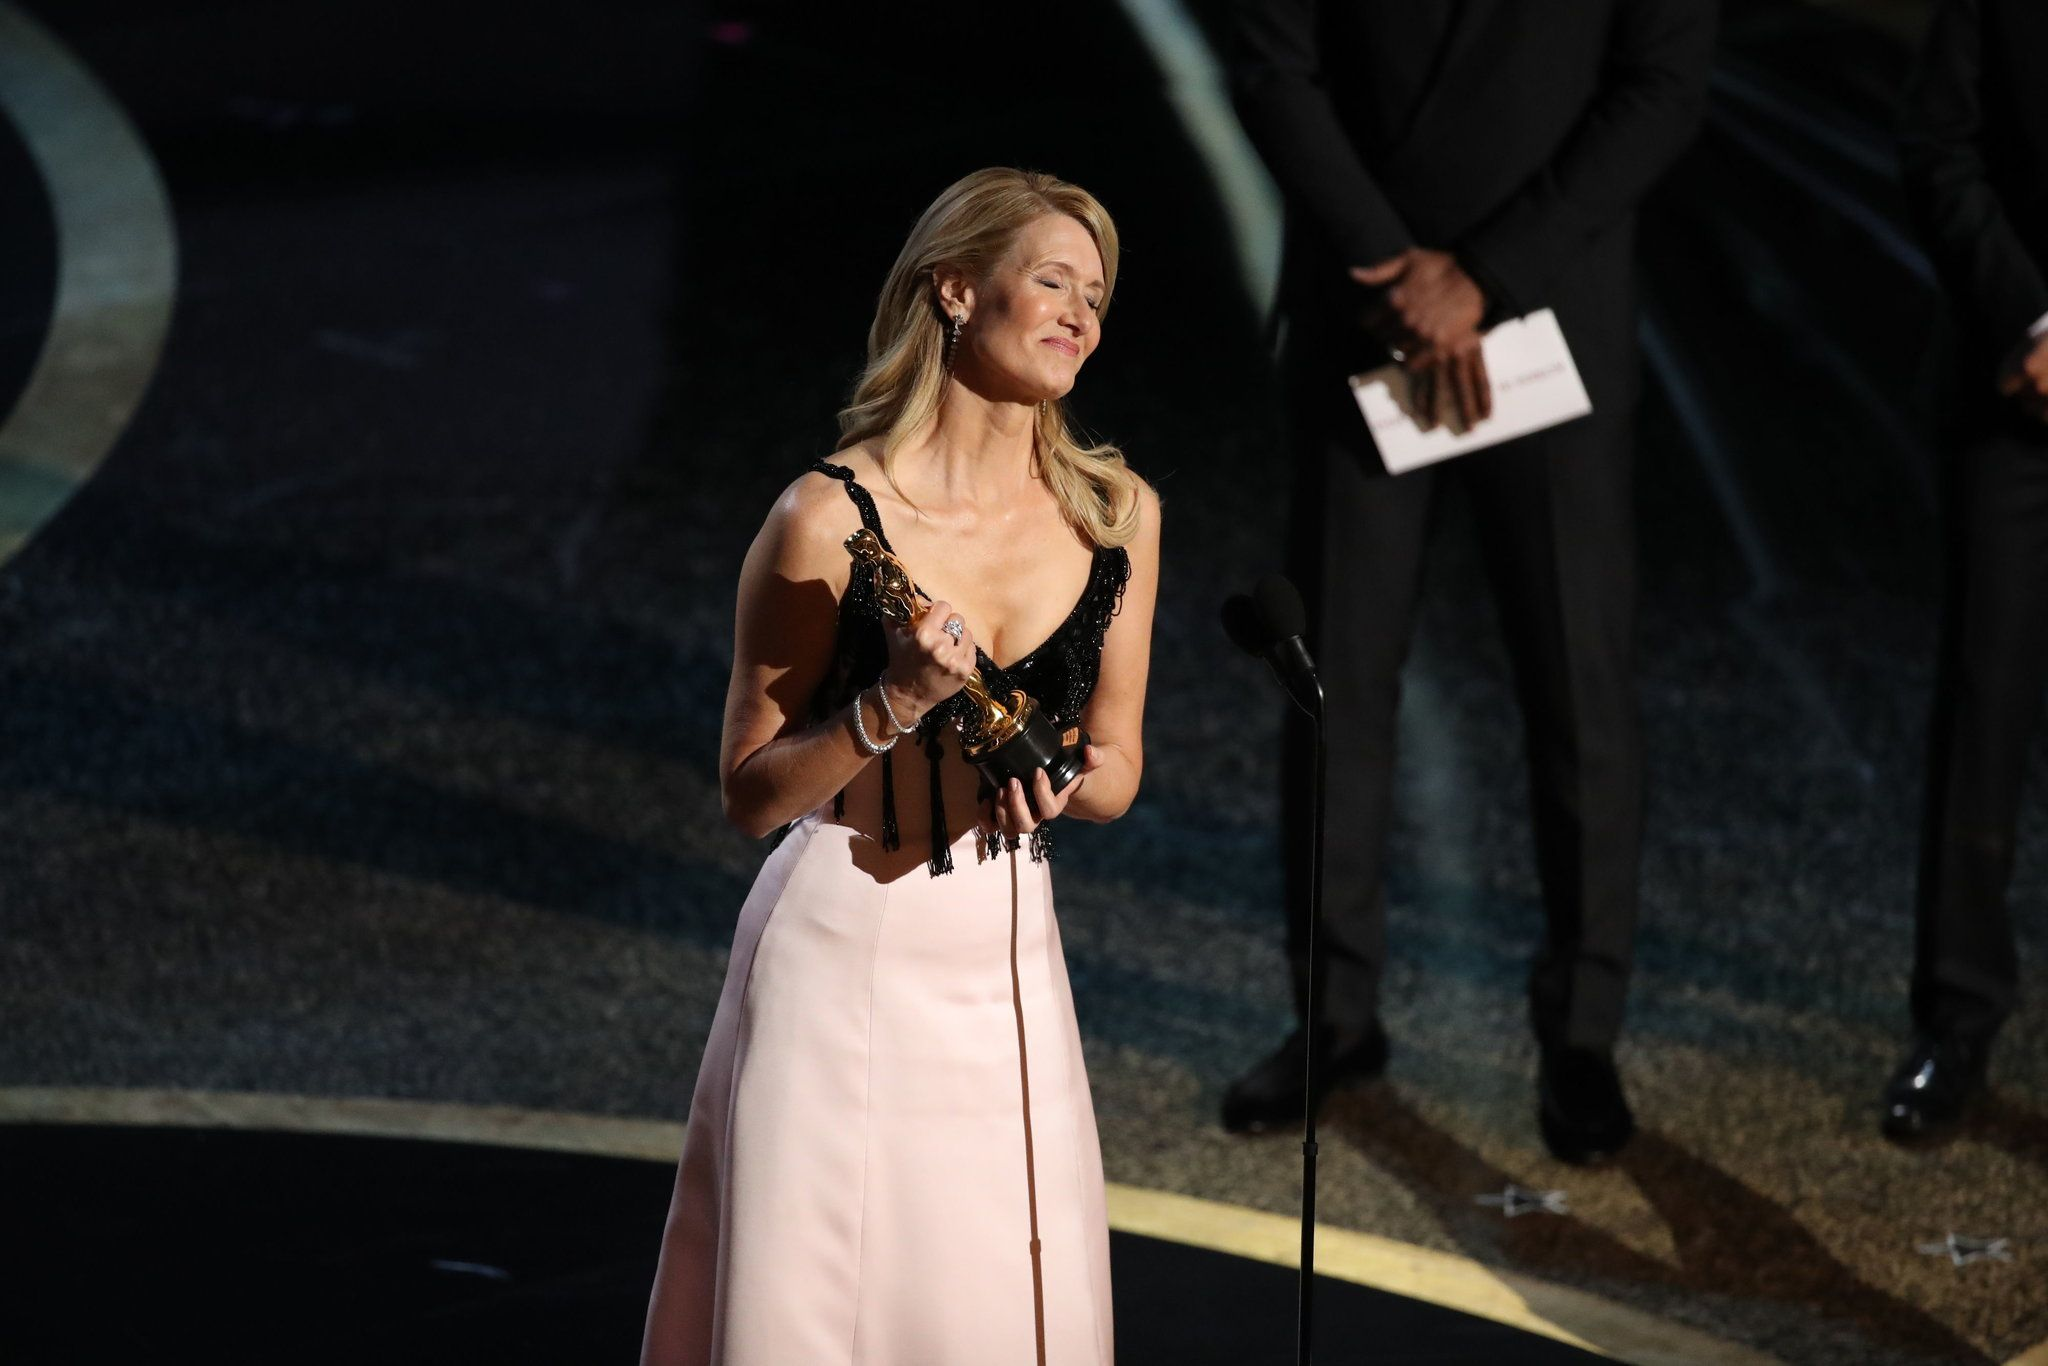 Oscars 2020 Highlights From a HistoryMaking Night in 2020